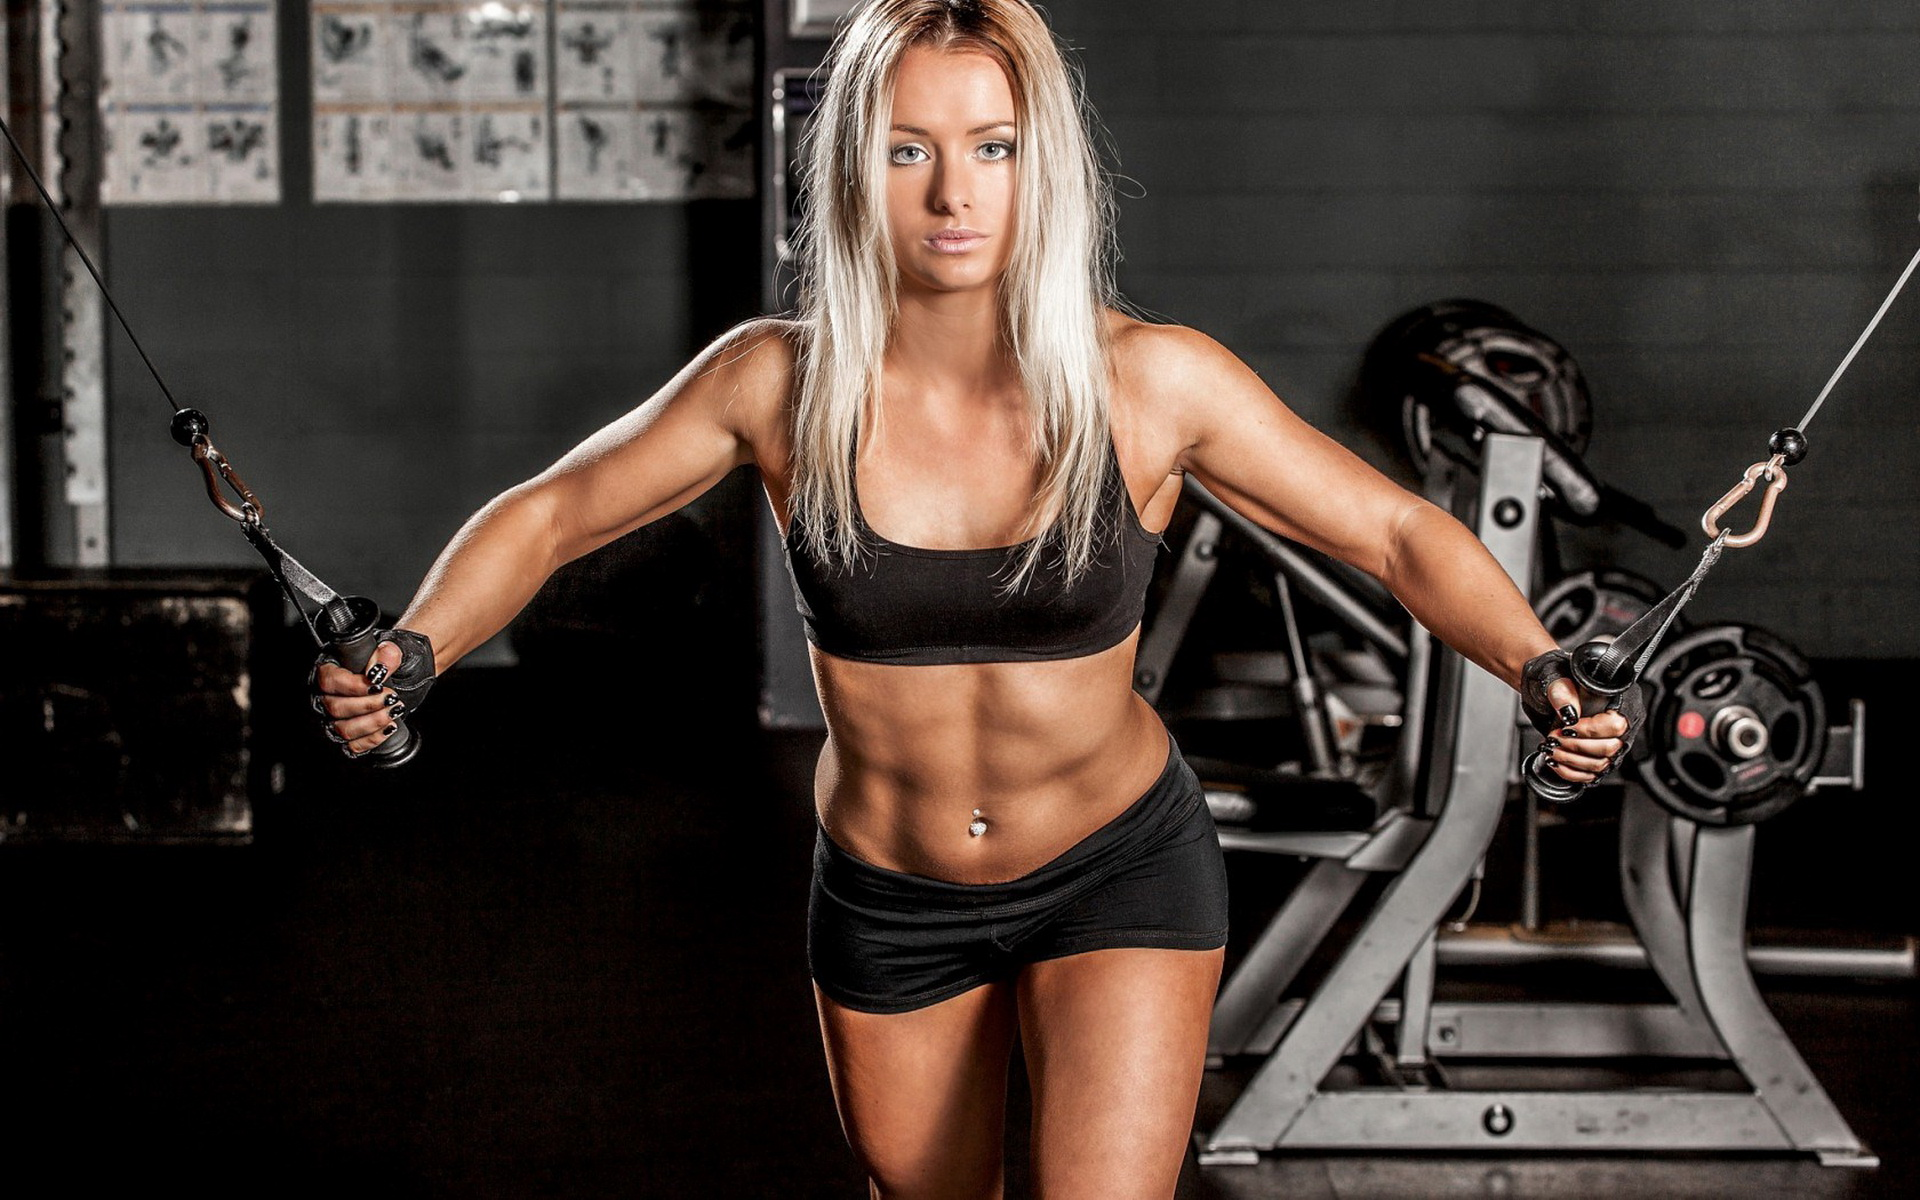 chica_fitness